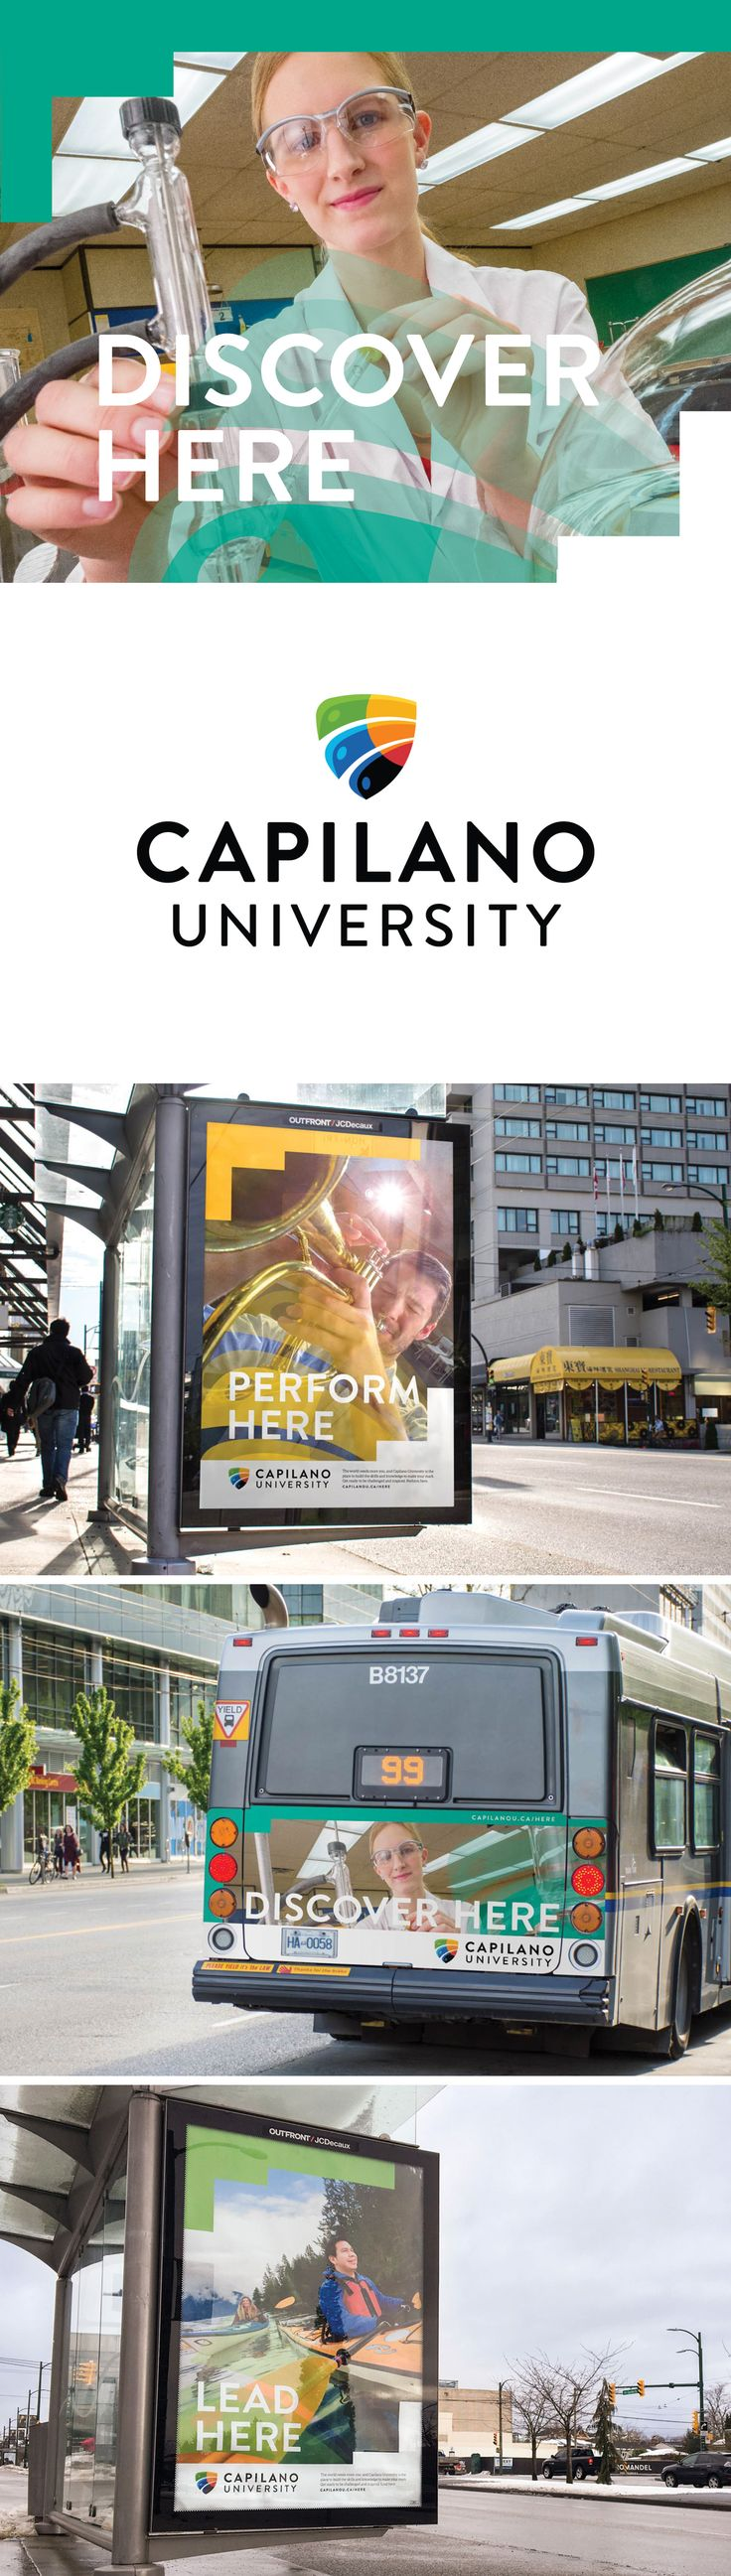 Brand launch campaign for Capilano University in North Vancouver, BC | Ion Brand Design #campaign #university #design #graphicdesign #education #outdooradvertising #branding